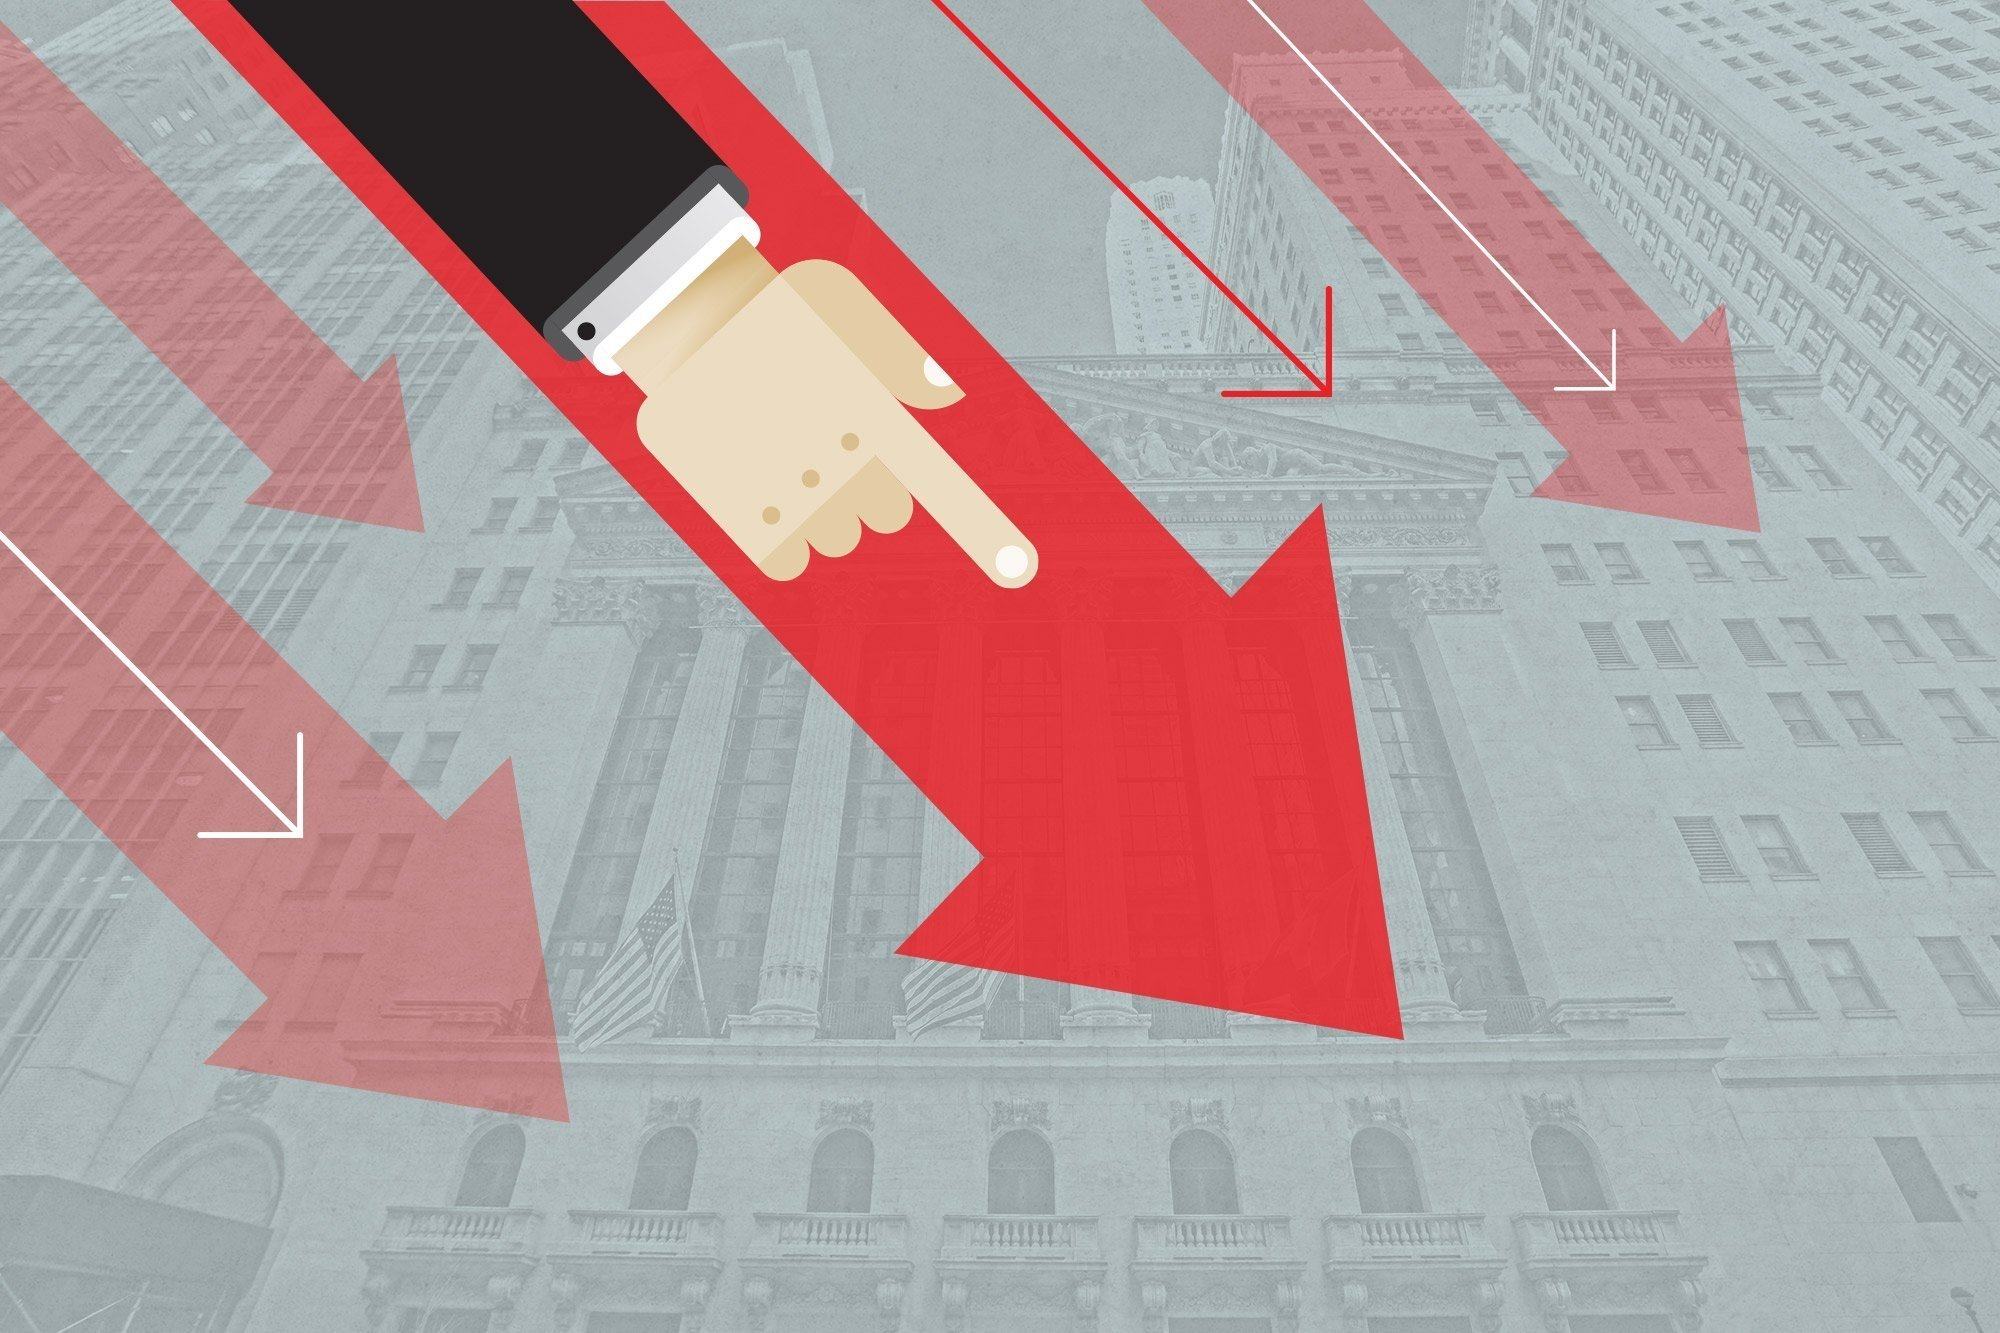 The Dow Jones Industrial Average has yo-yoed from a historic loss on Monday to a 500-plus point gain on Tuesday.